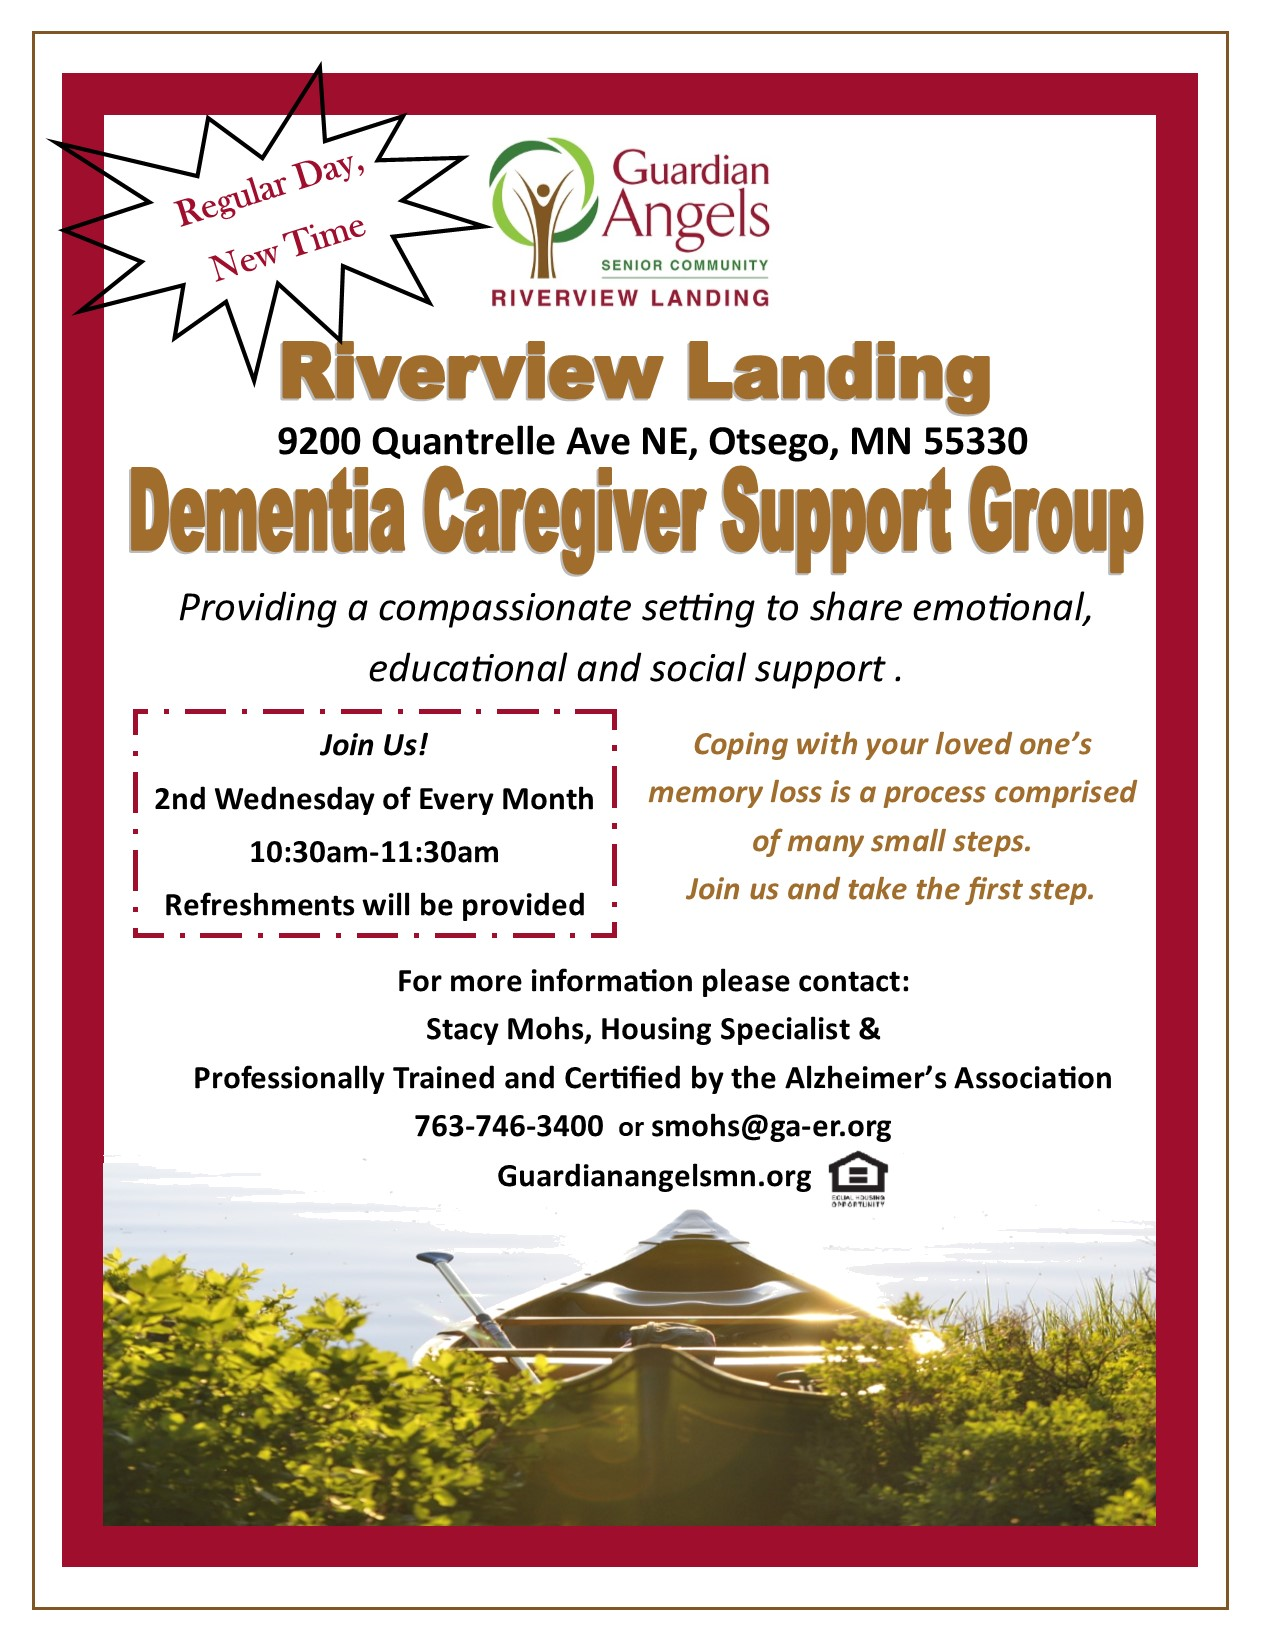 RVL_Dementia_Support_Group_Flyer121819.jpg